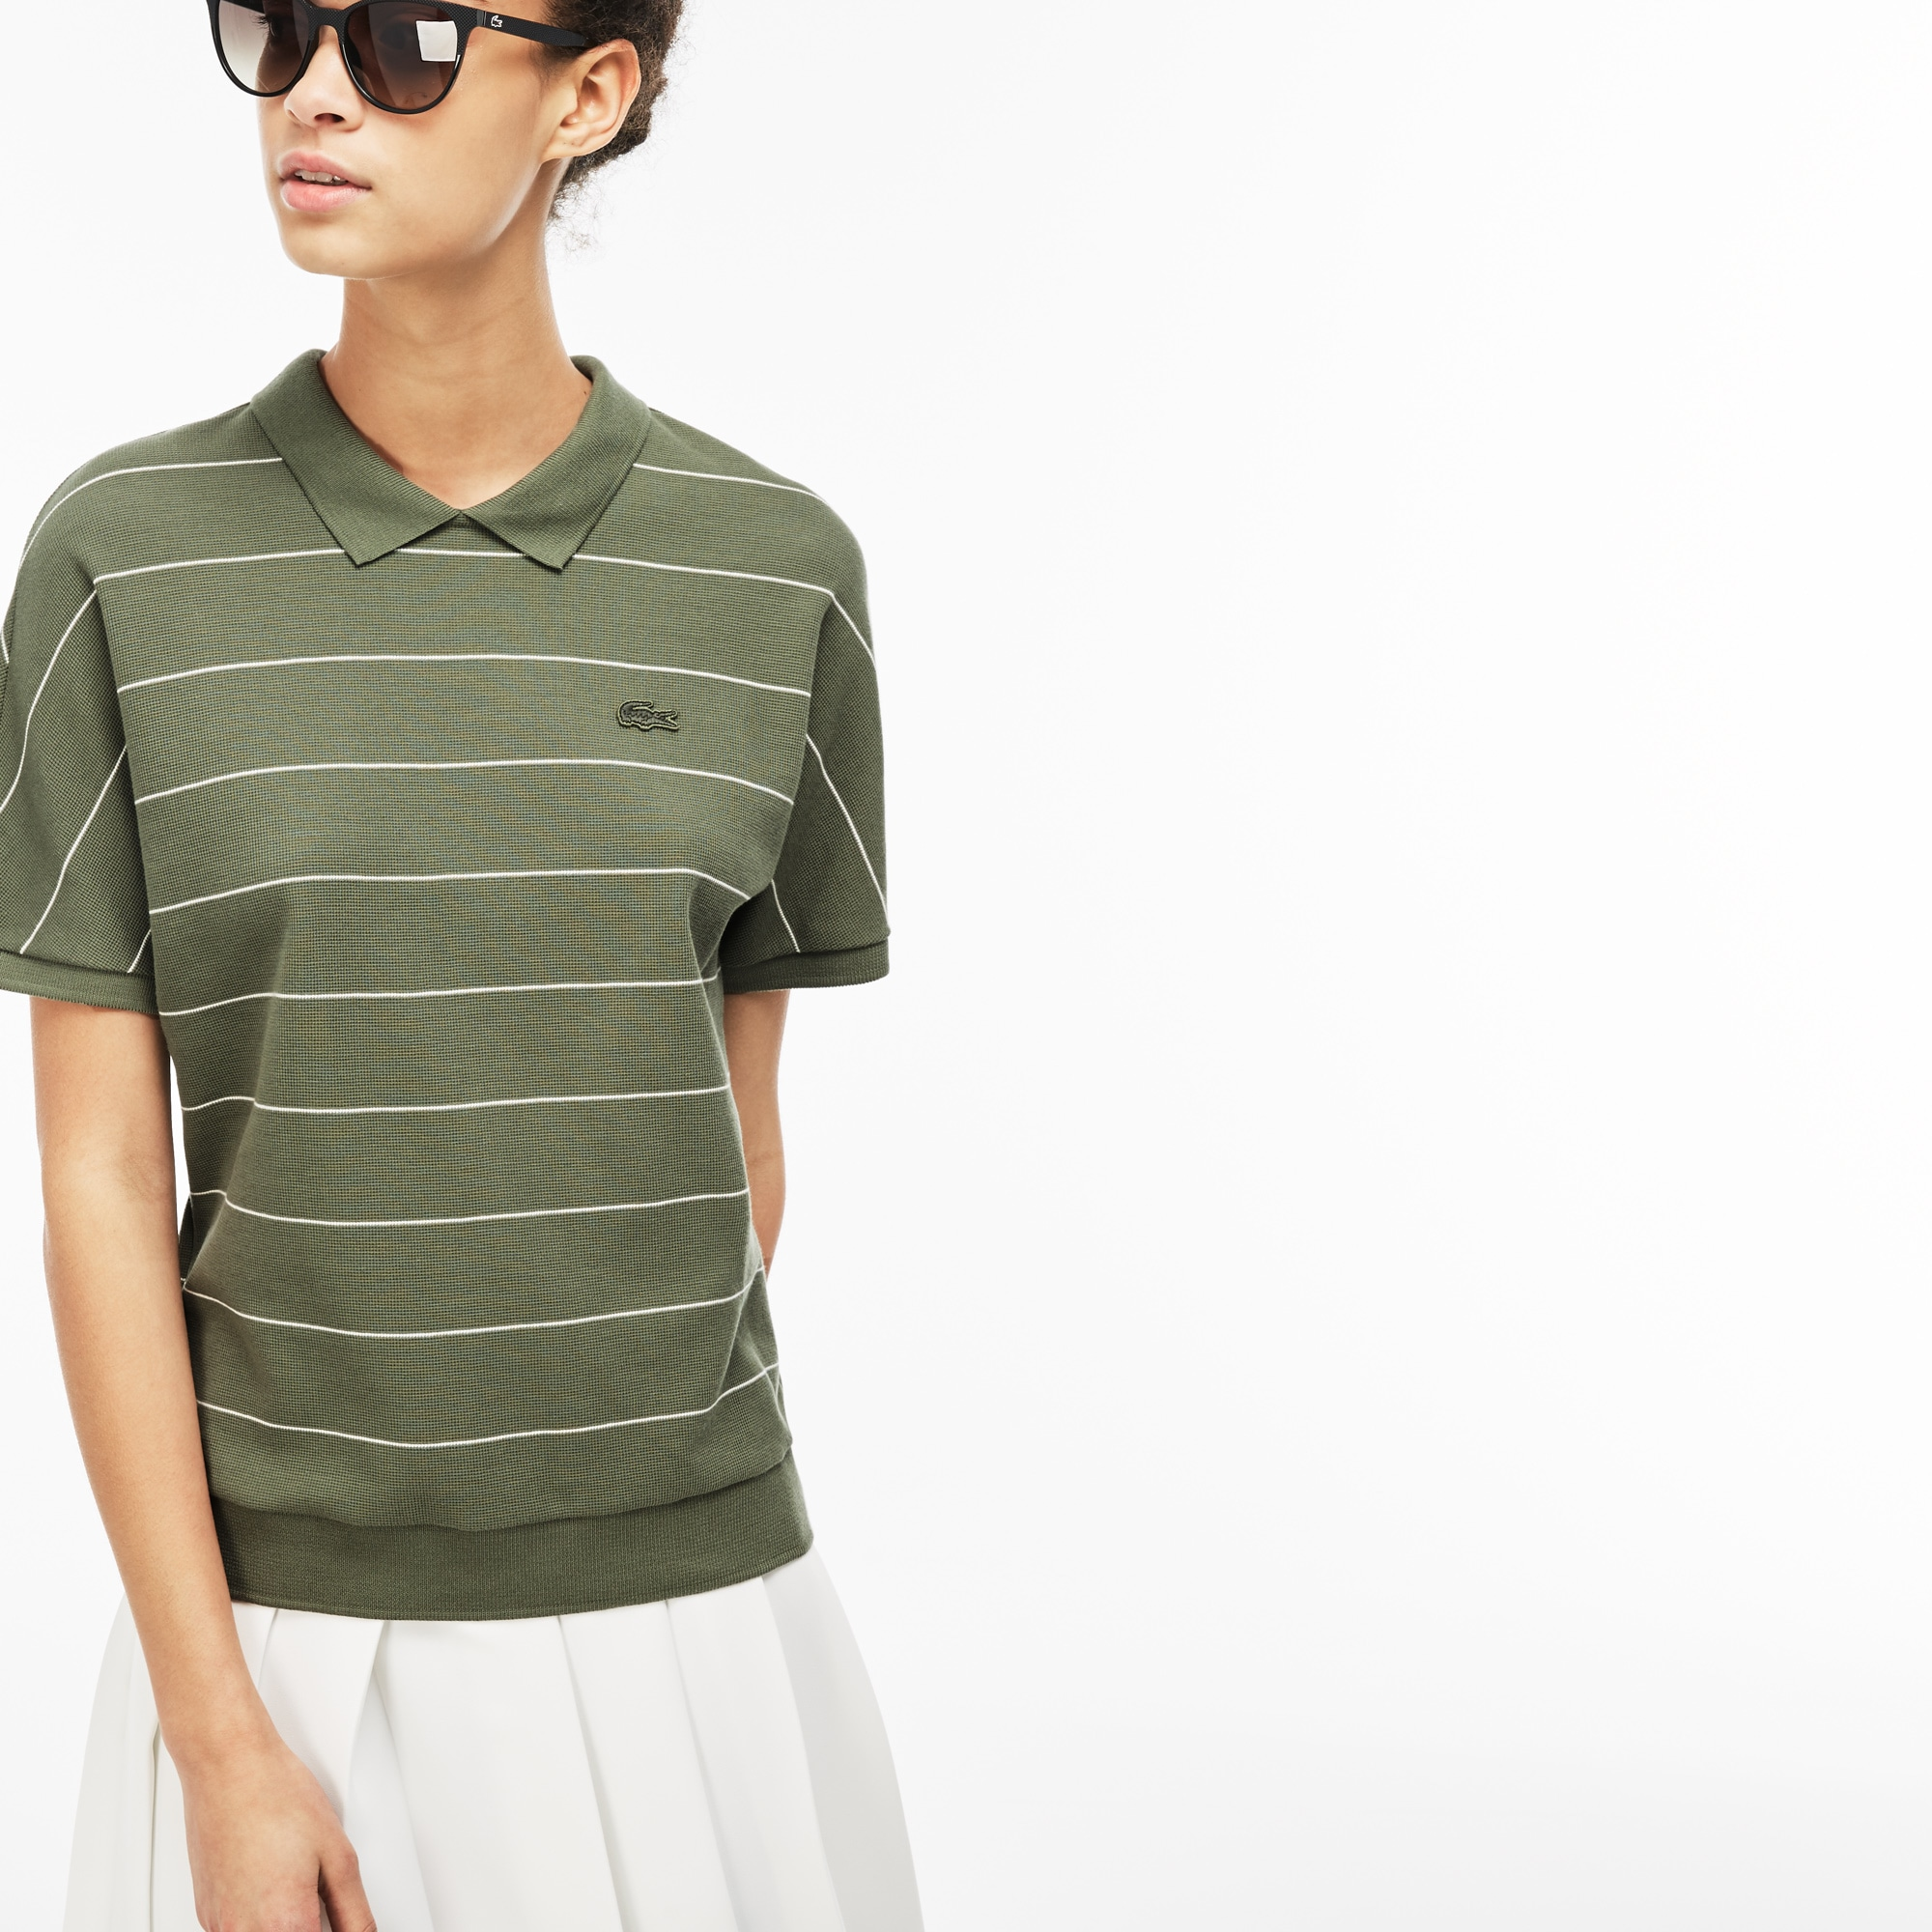 Women's Lacoste Finely Striped Cotton Honeycomb Polo Shirt